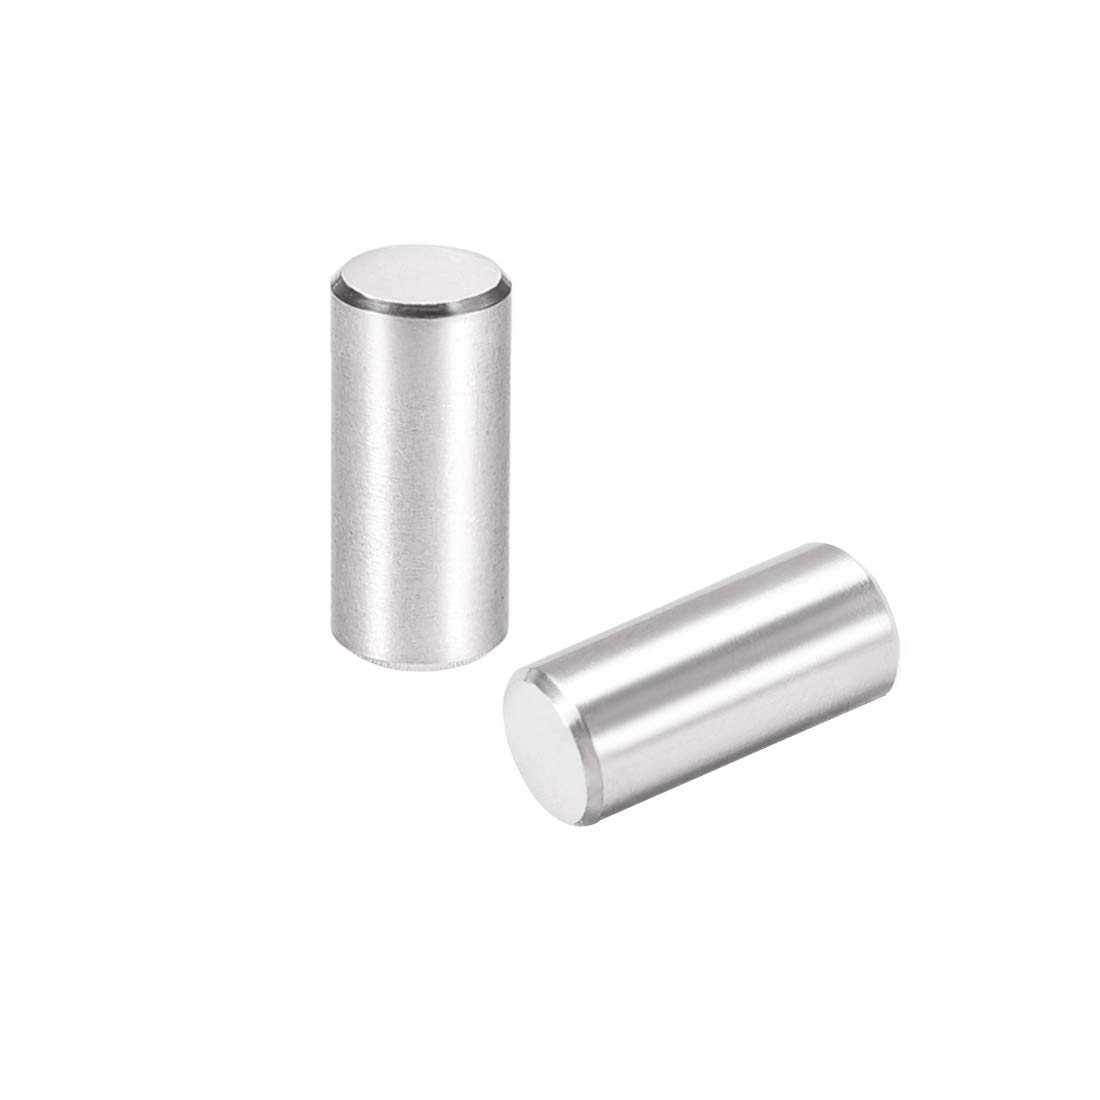 uxcell 15Pcs 6mm X 55mm Dowel Pin 304 Stainless Steel Cylindrical Shelf Support Pin Fasten Elements Silver Tone